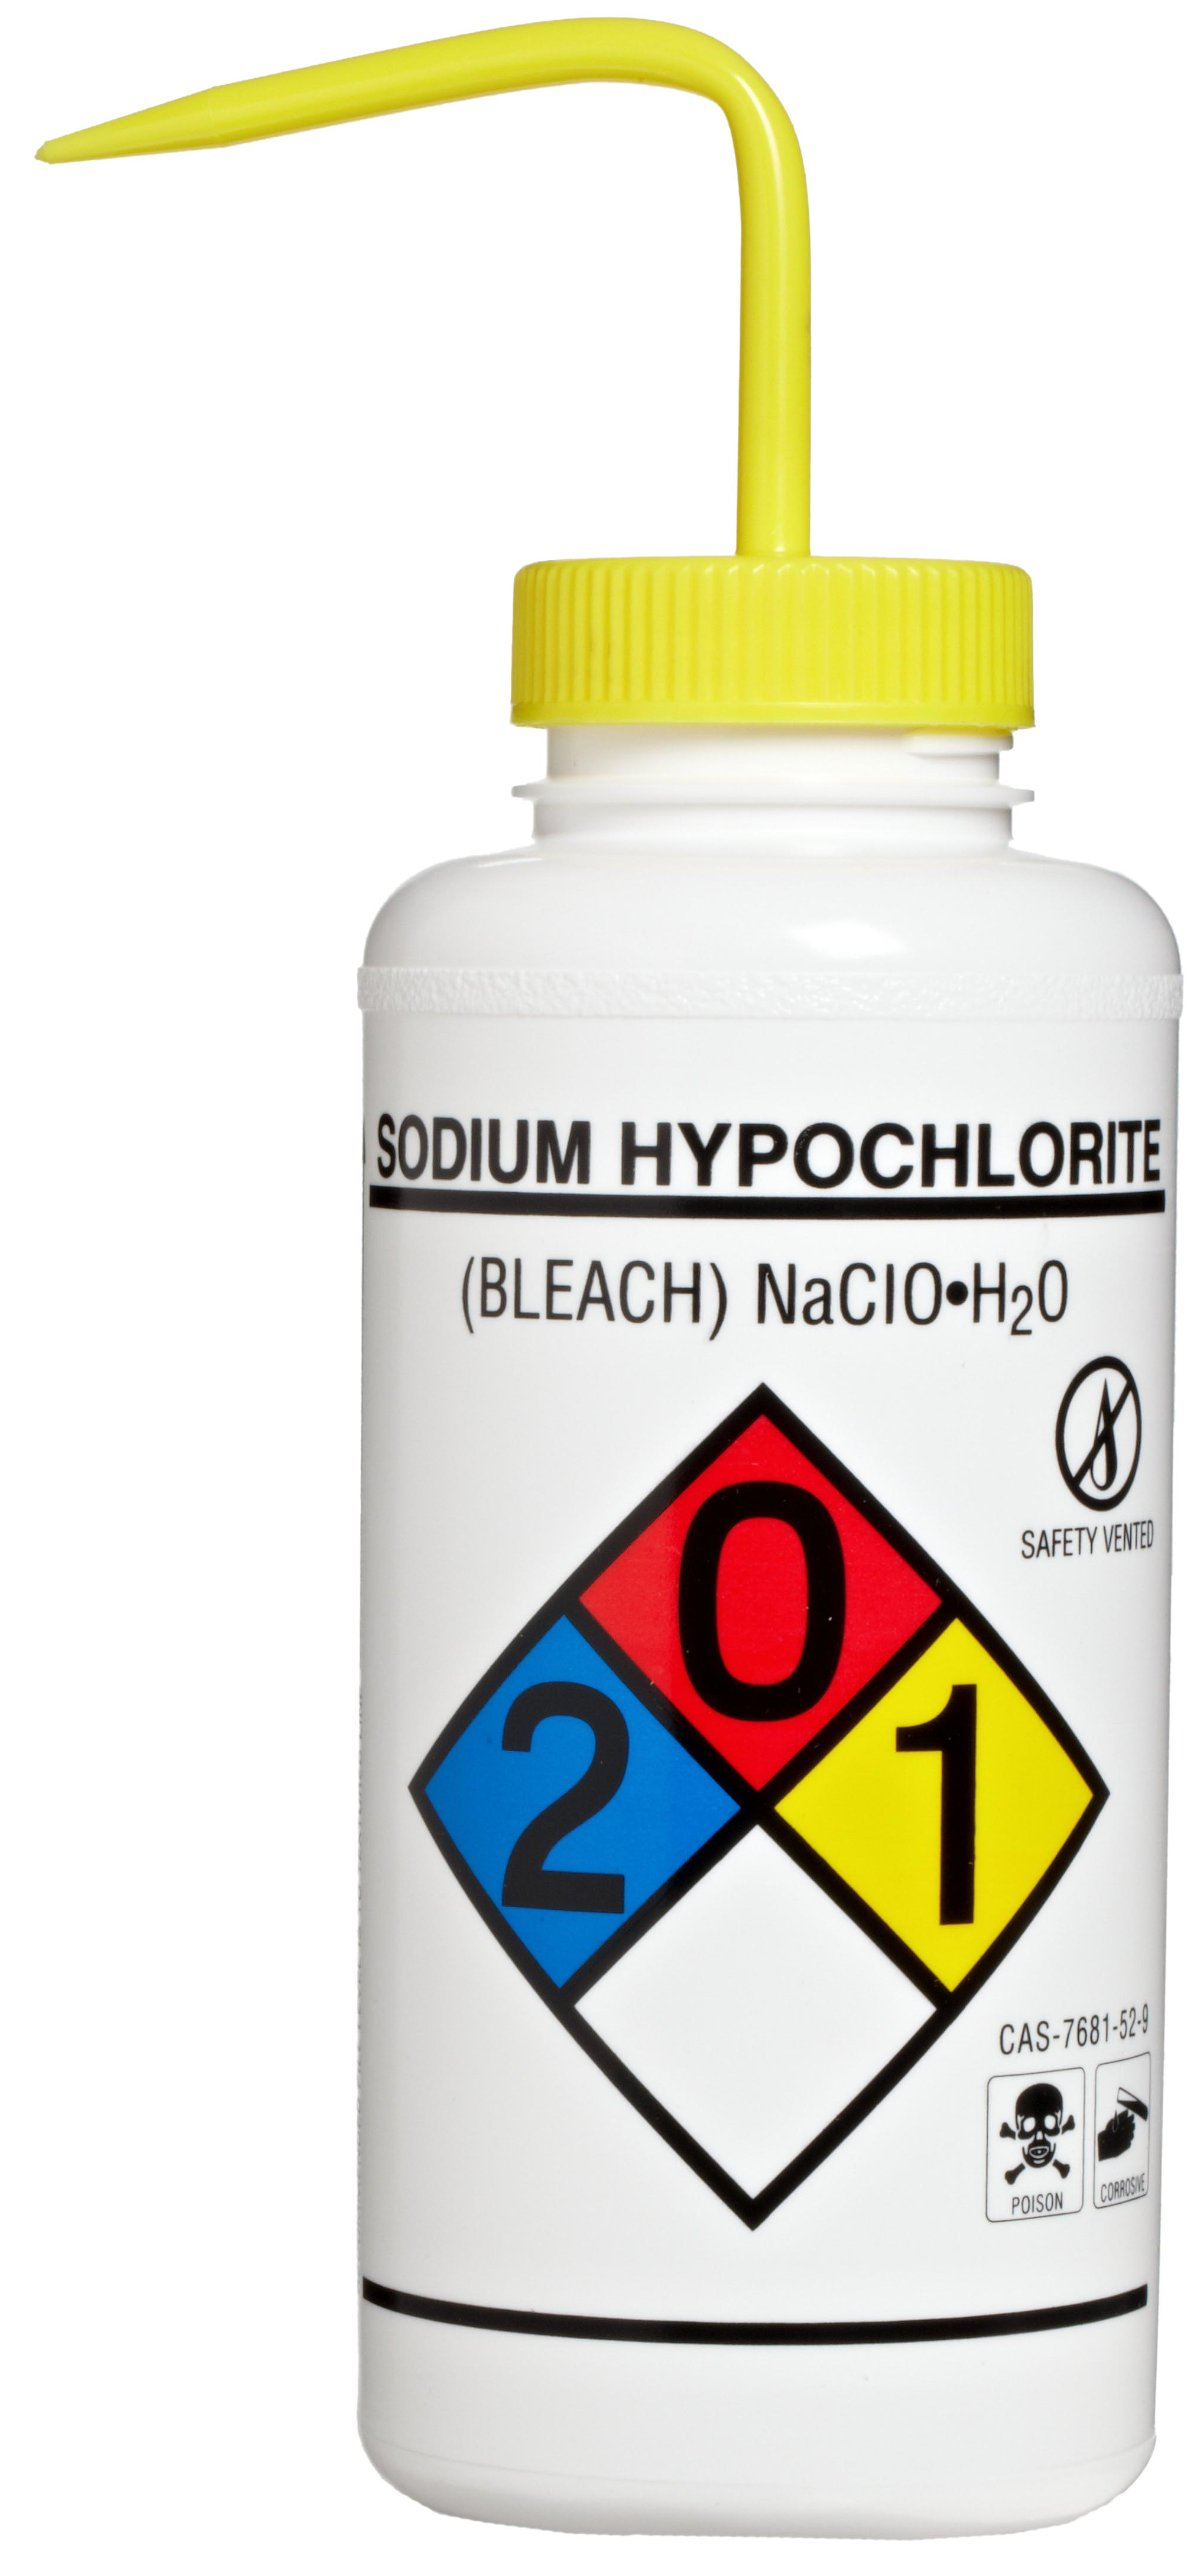 Bel-Art Right-to-Know Safety-Vented/Labeled 4-Color Sodium Hypochlorite (Bleach) Wide-Mouth Wash Bottles; 1000ml (32oz), Polyethylene w/Yellow Polypropylene Cap (Pack of 2) (F11832-0015)